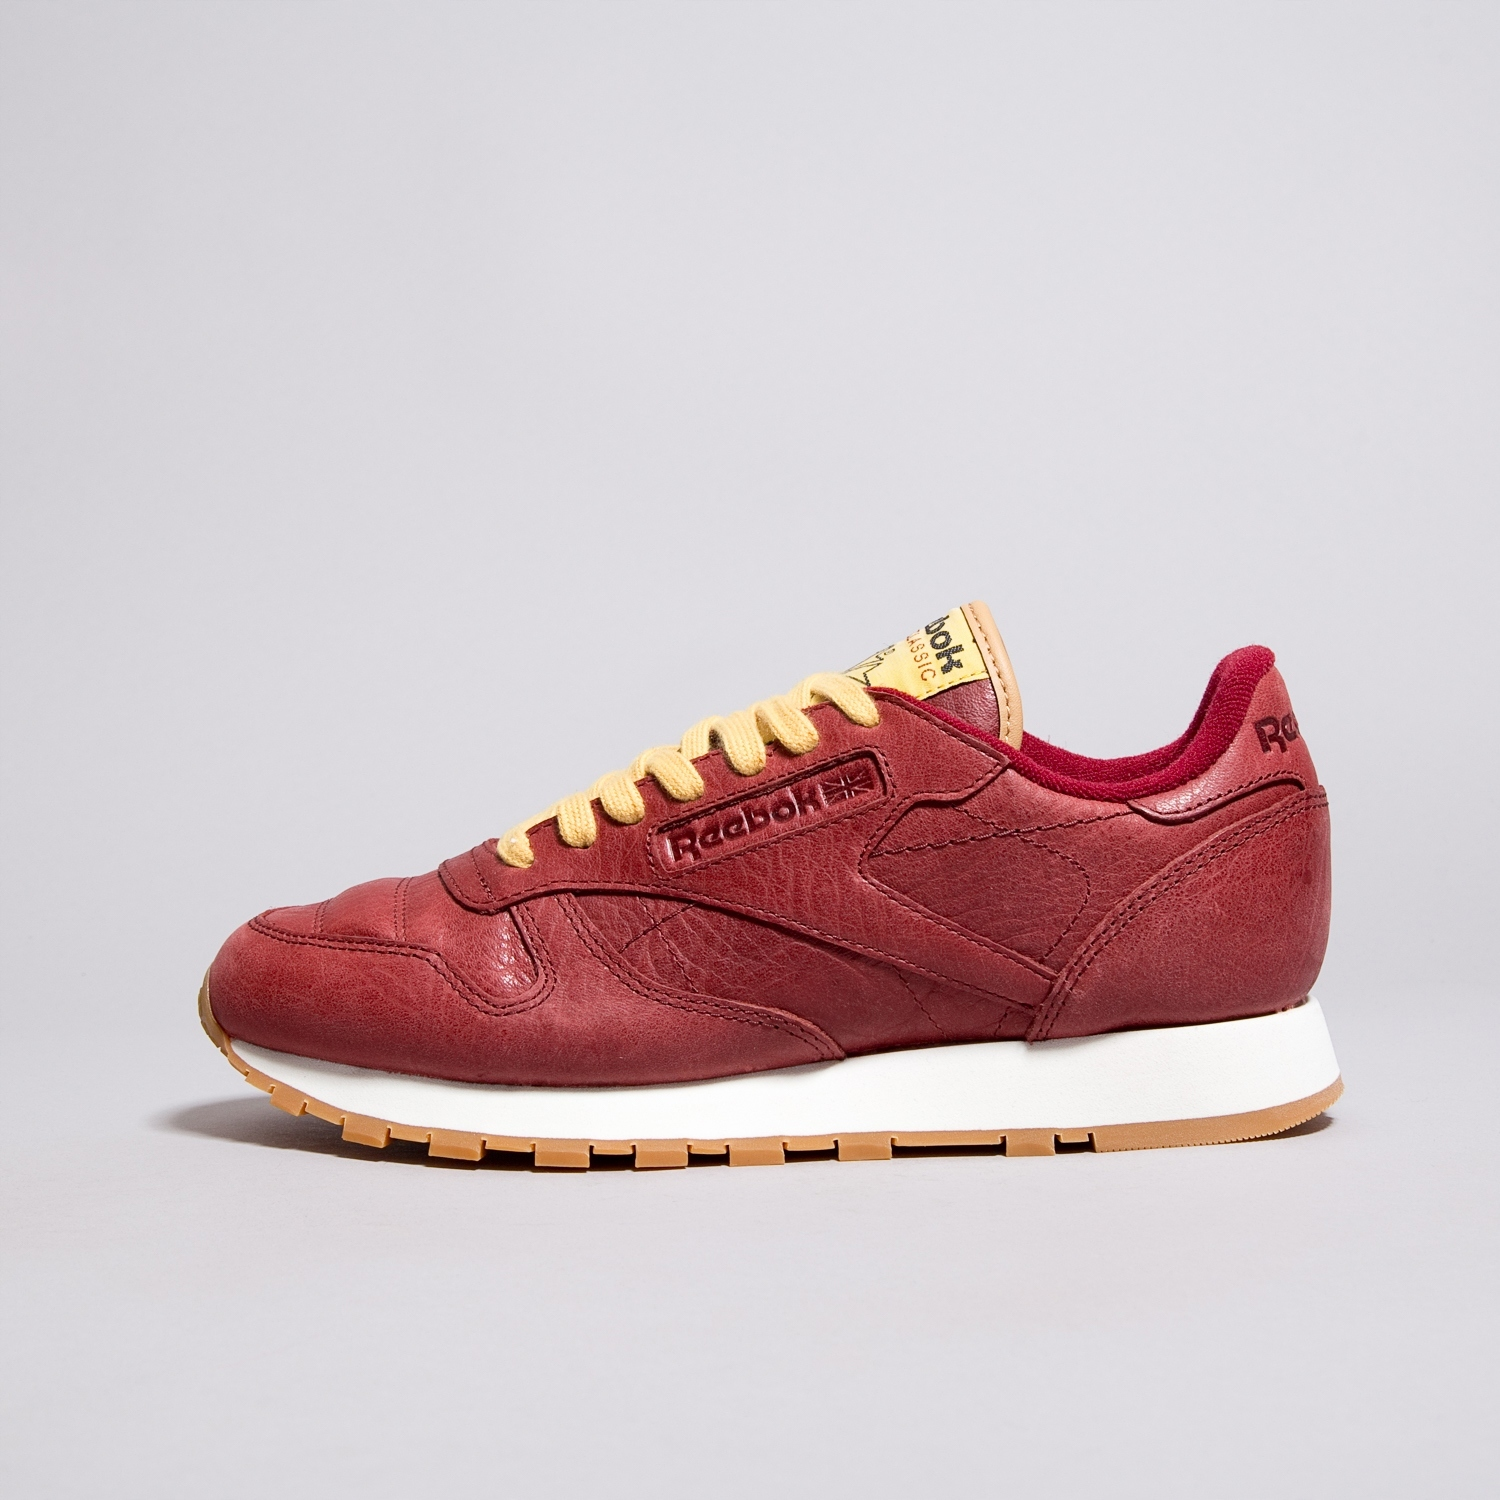 on sale 26b72 7d70e REEBOK CLASSIC LEATHER BOXING BD4891-US9.5 EU42.5